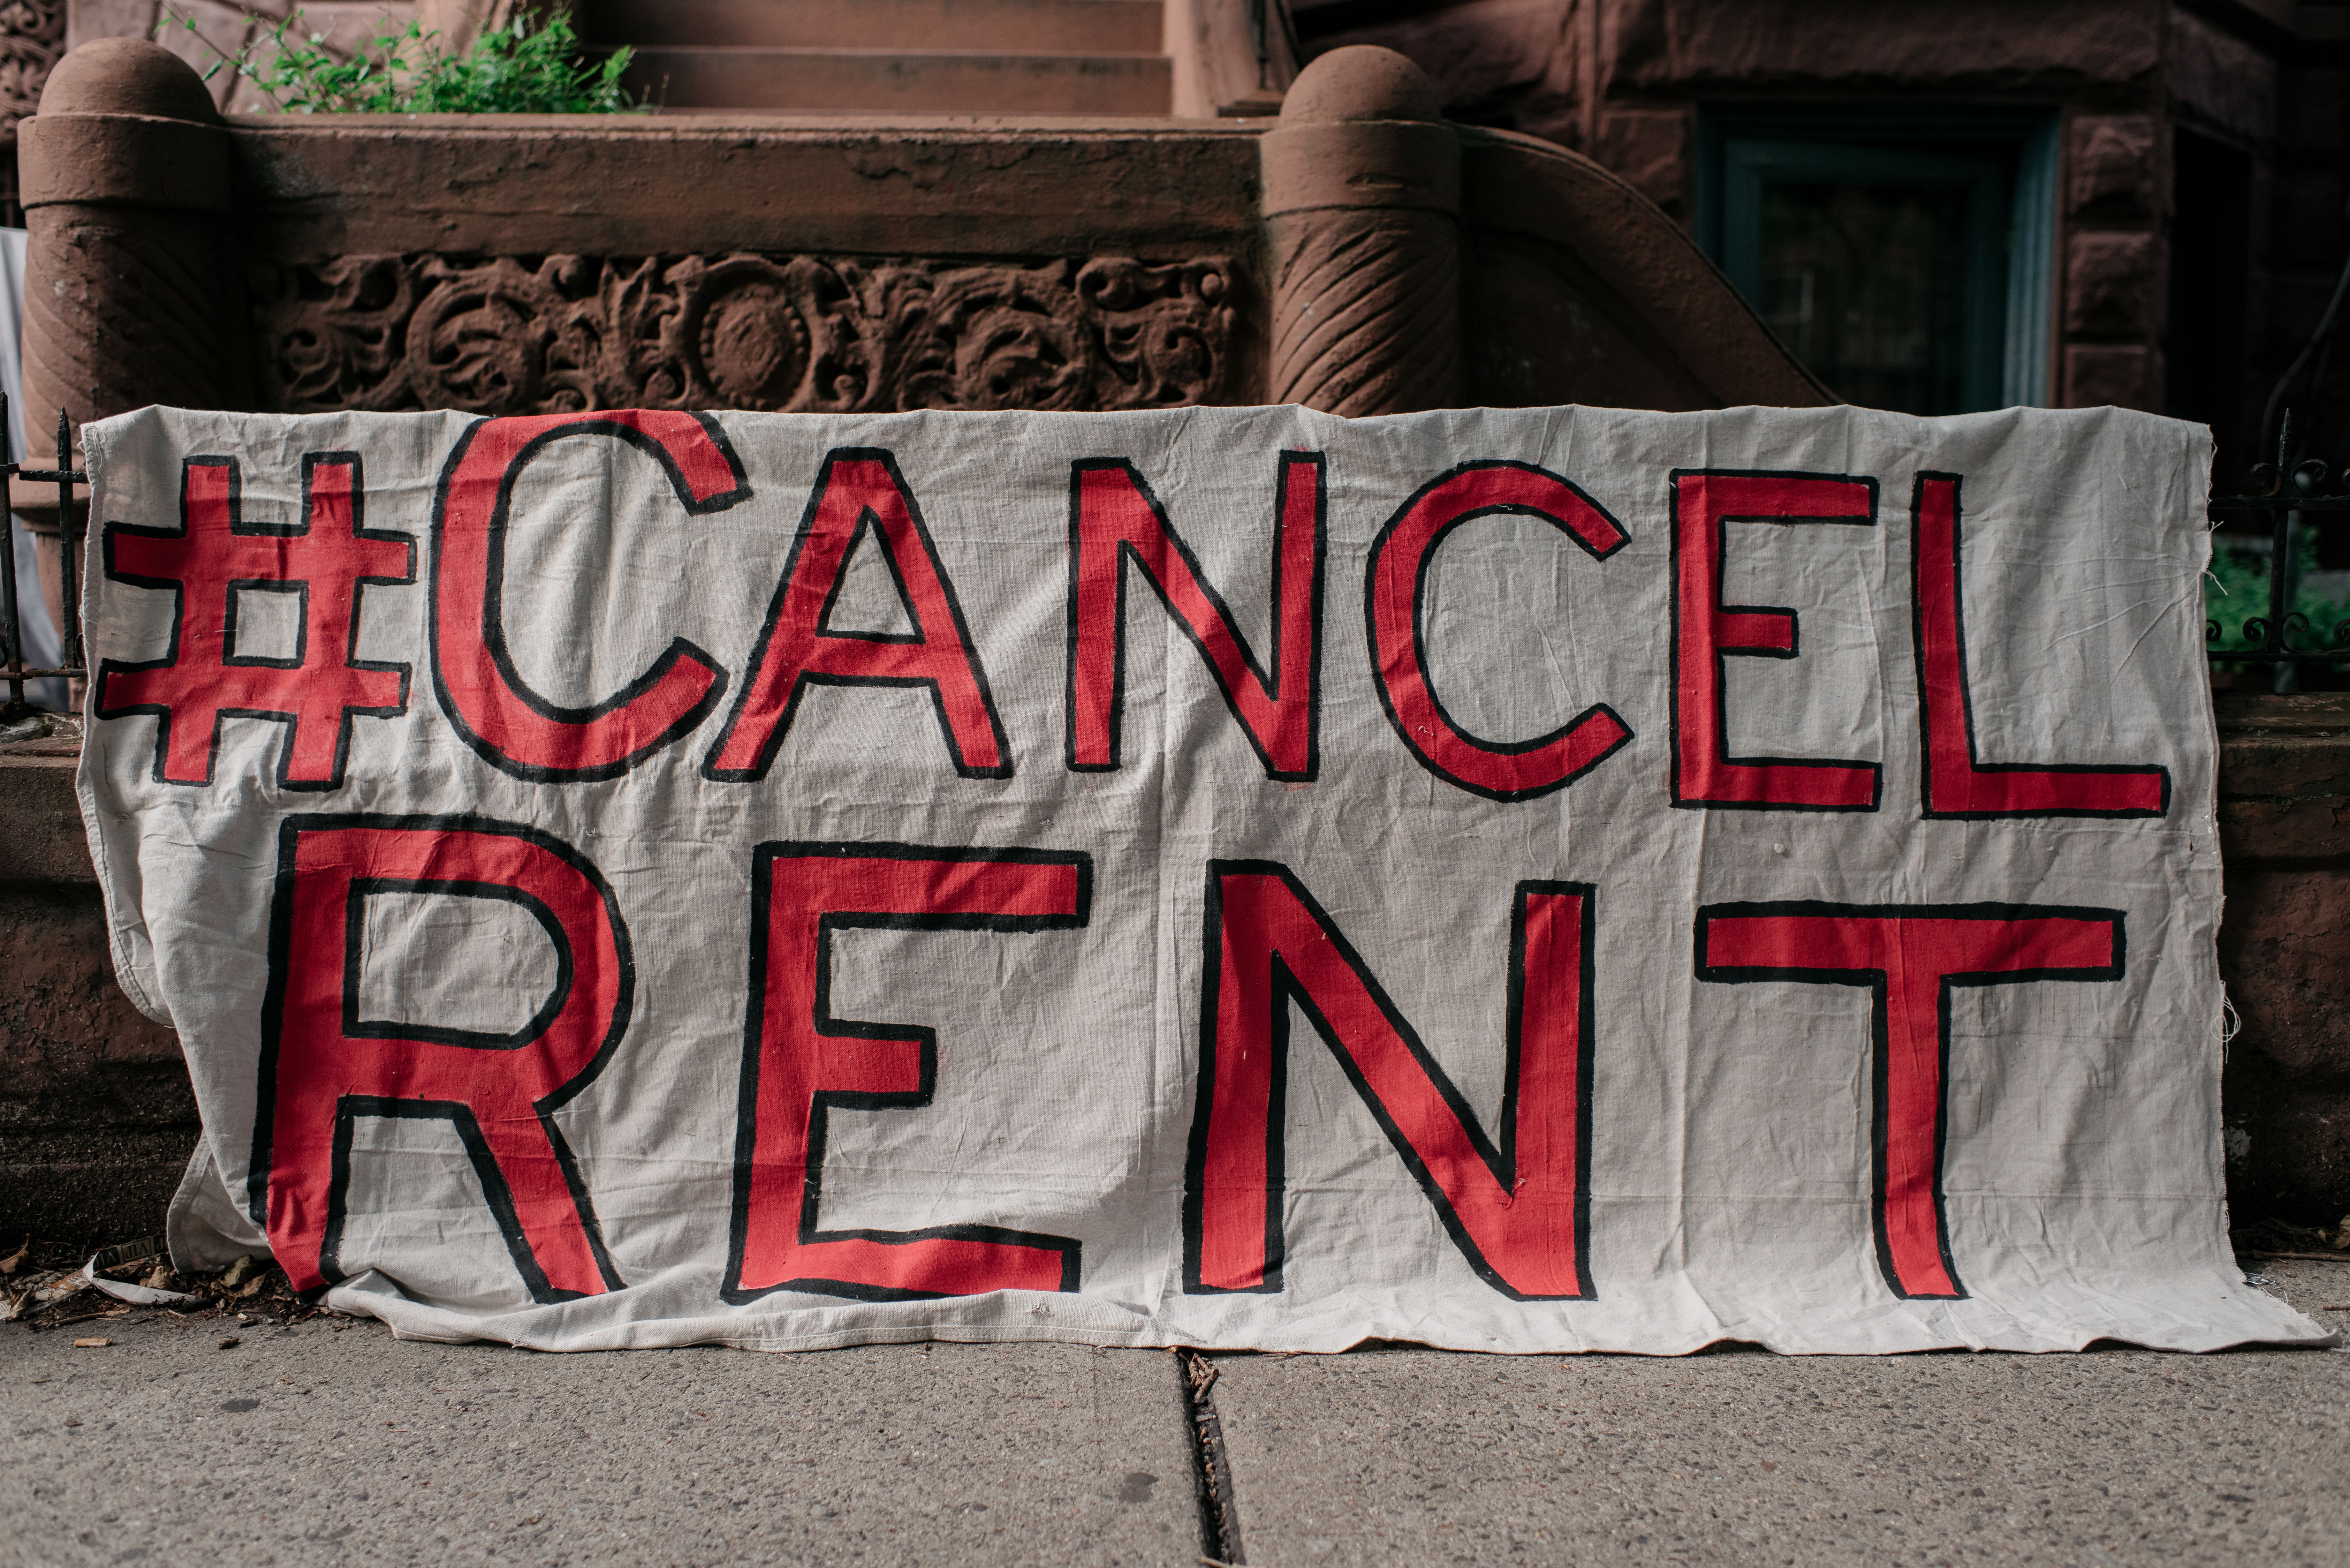 Housing activists gather to protest alleged tenant harassment by a landlord and call for cancellation of rent in the Crown Heights neighborhood on July 31, 2020 in Brooklyn, New York. (Photo by Scott Heins/Getty Images)